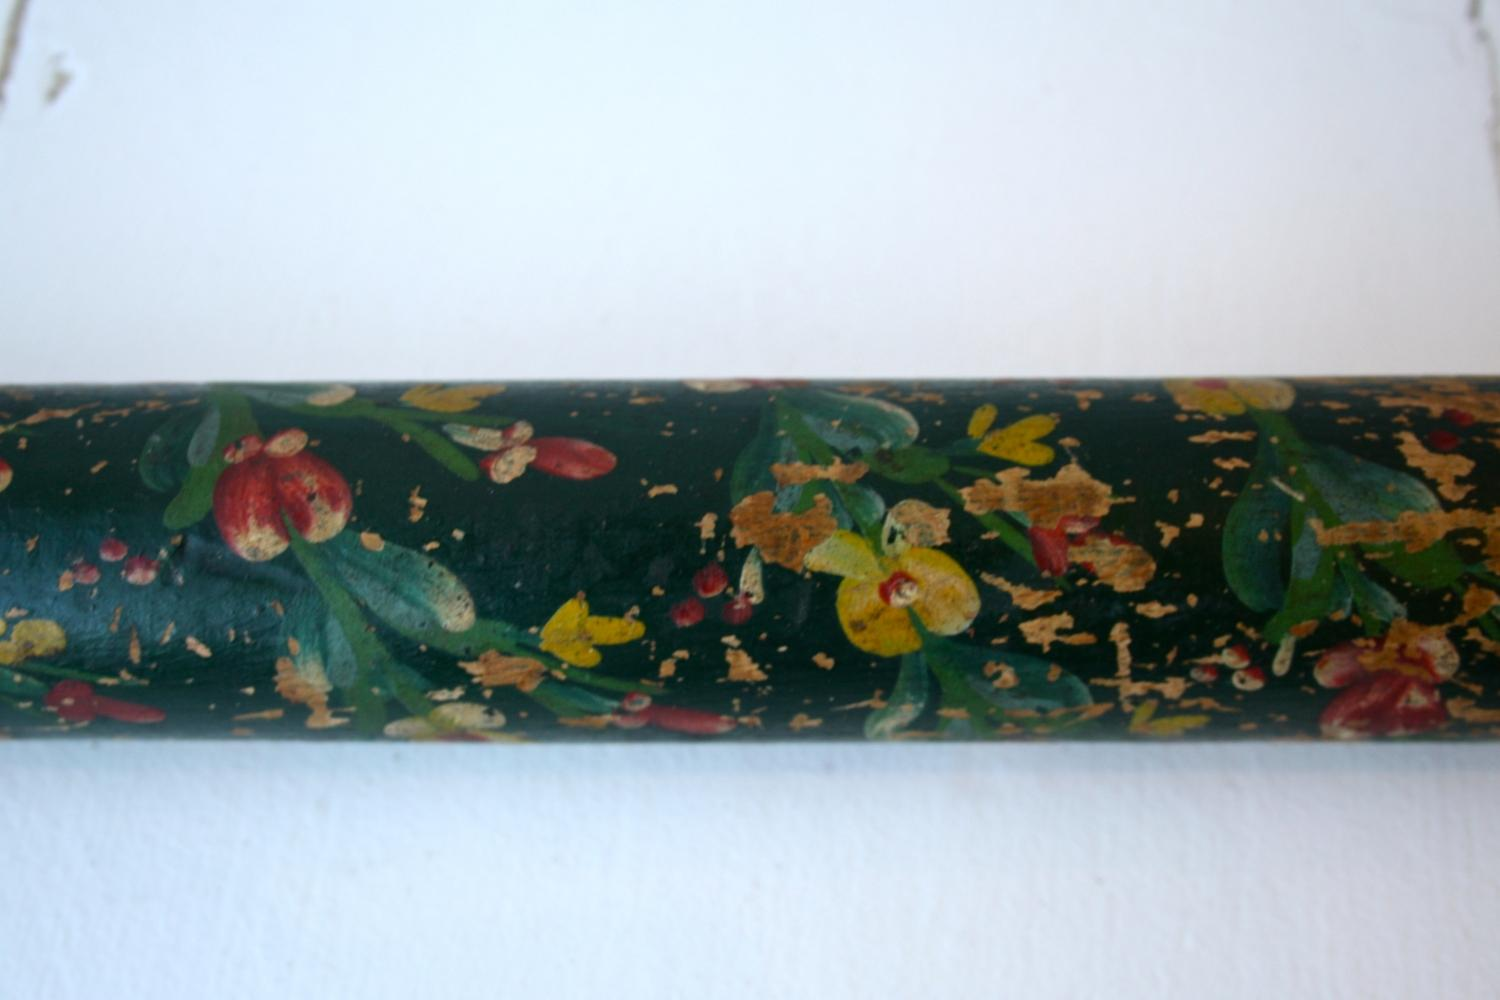 Handpainted wooden rolling pin